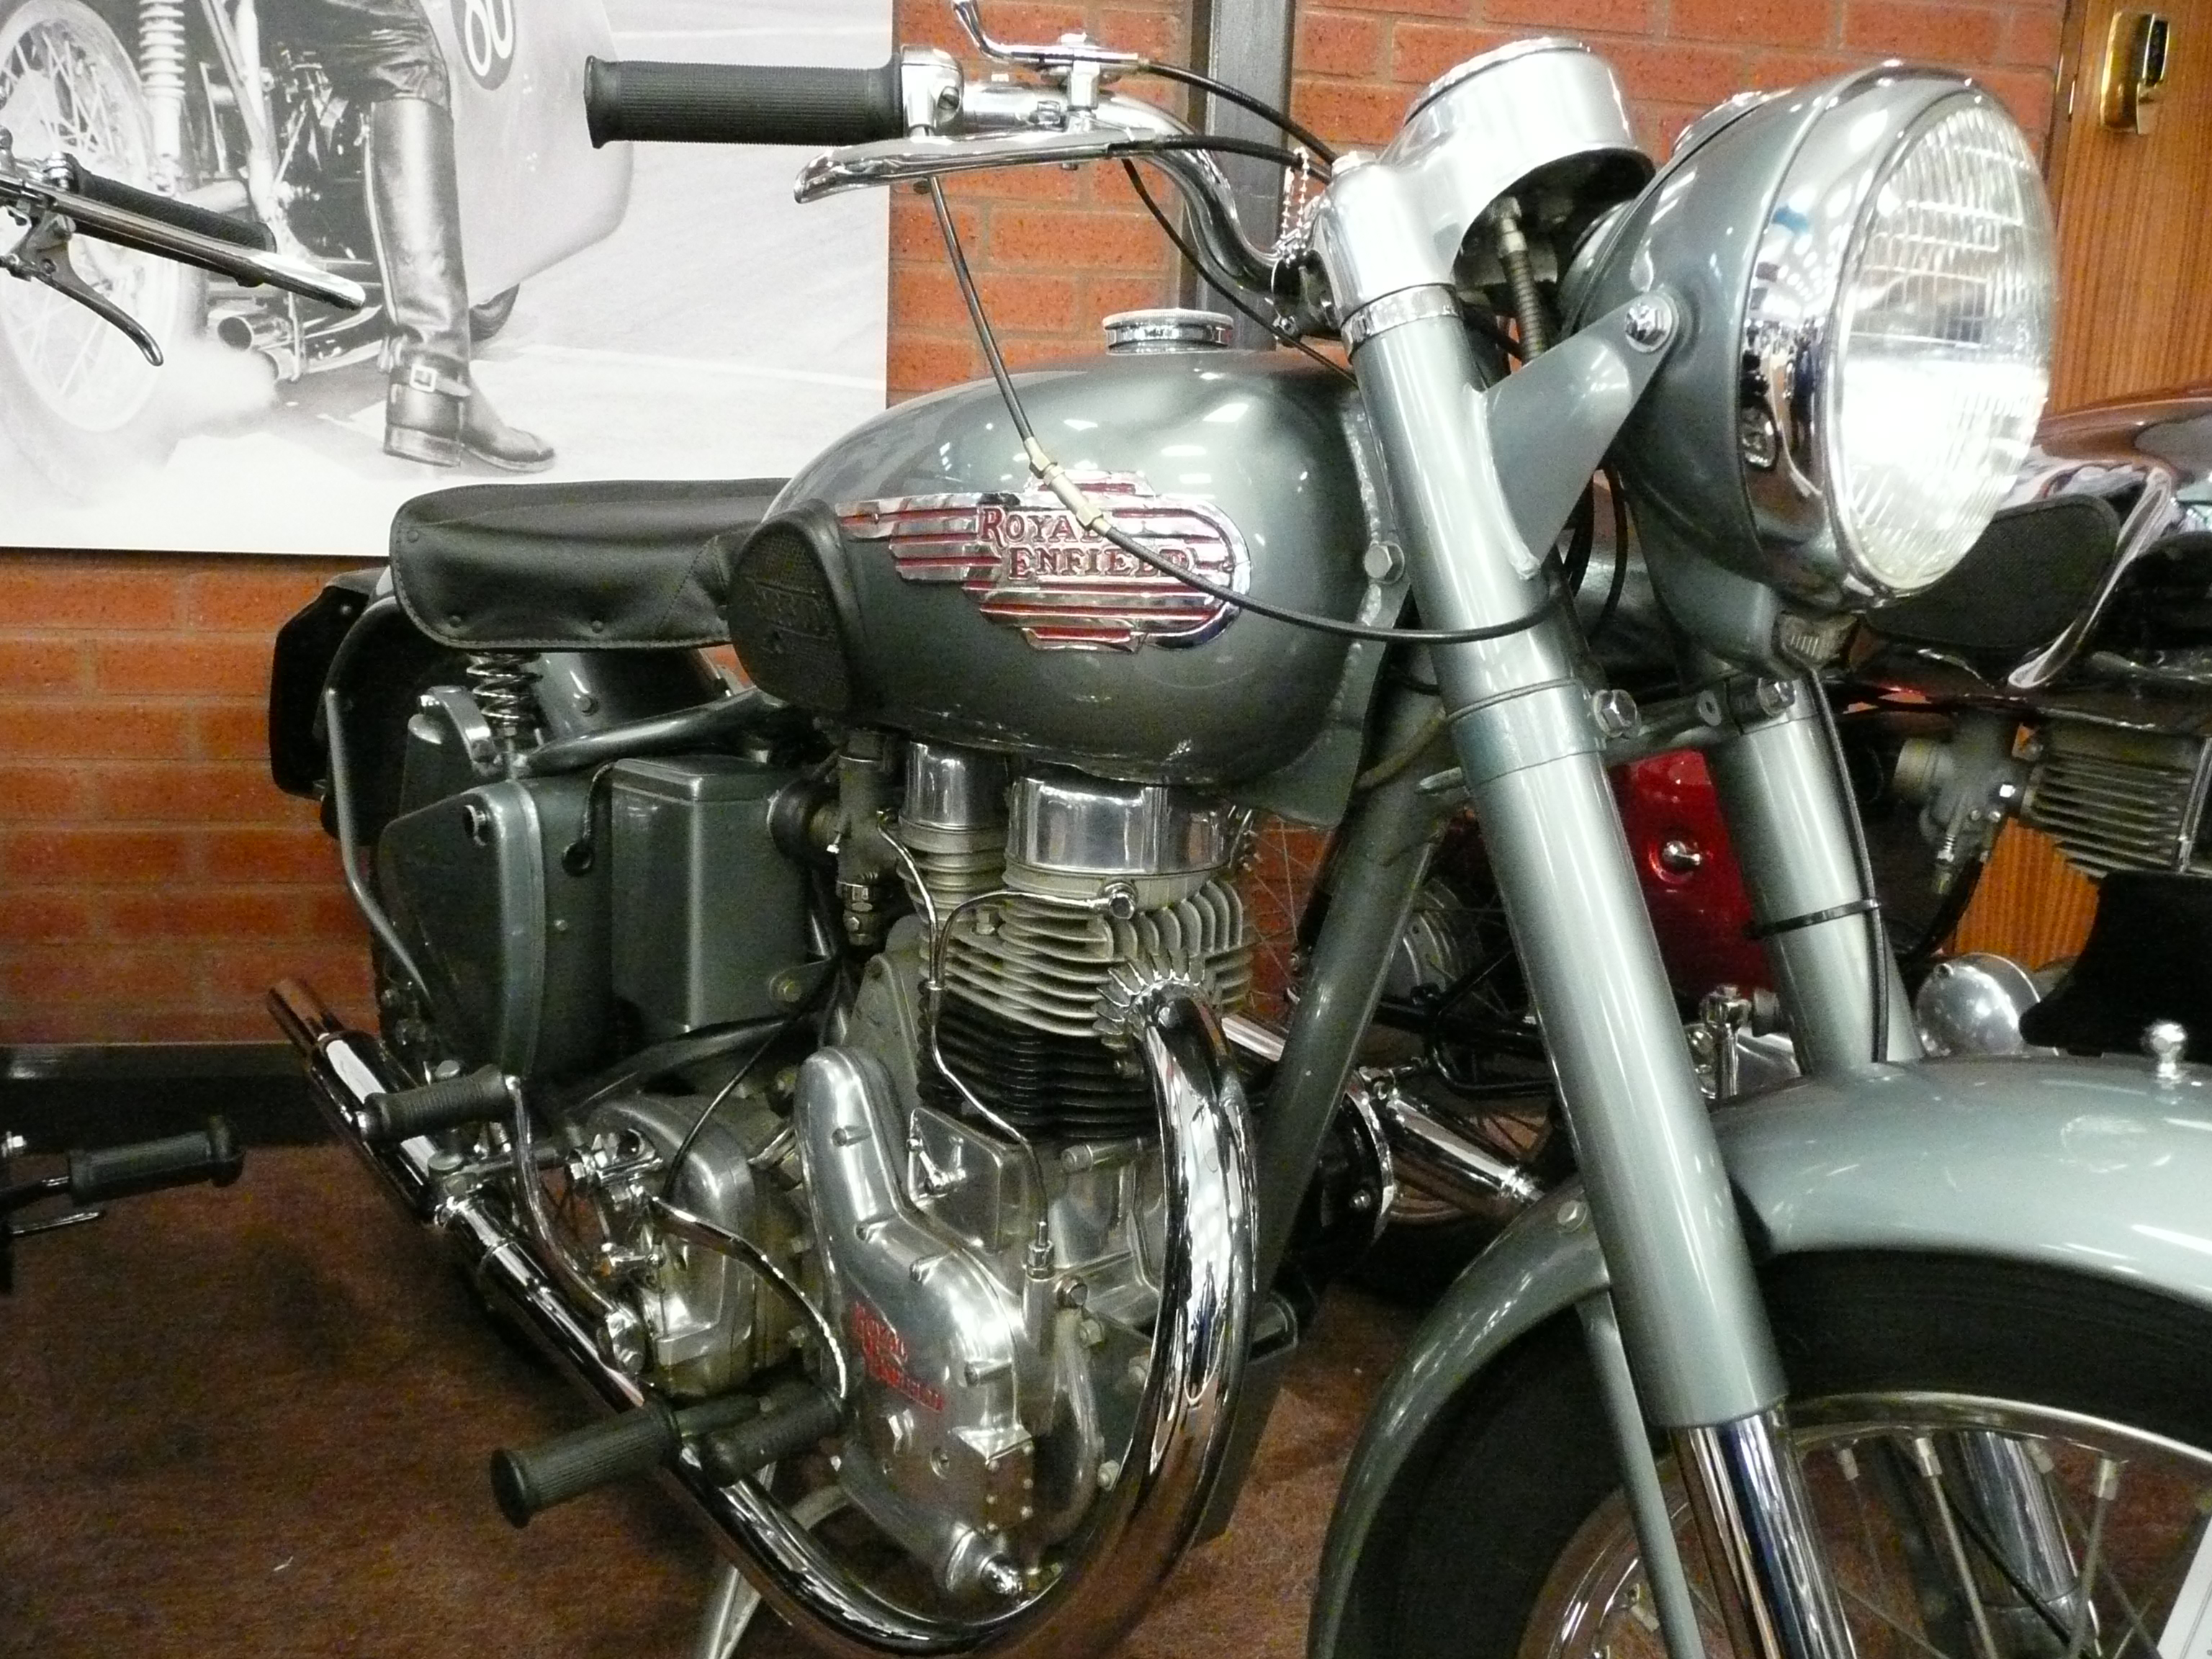 Royal Enfield Bullet 350 Army 1987 images #122434